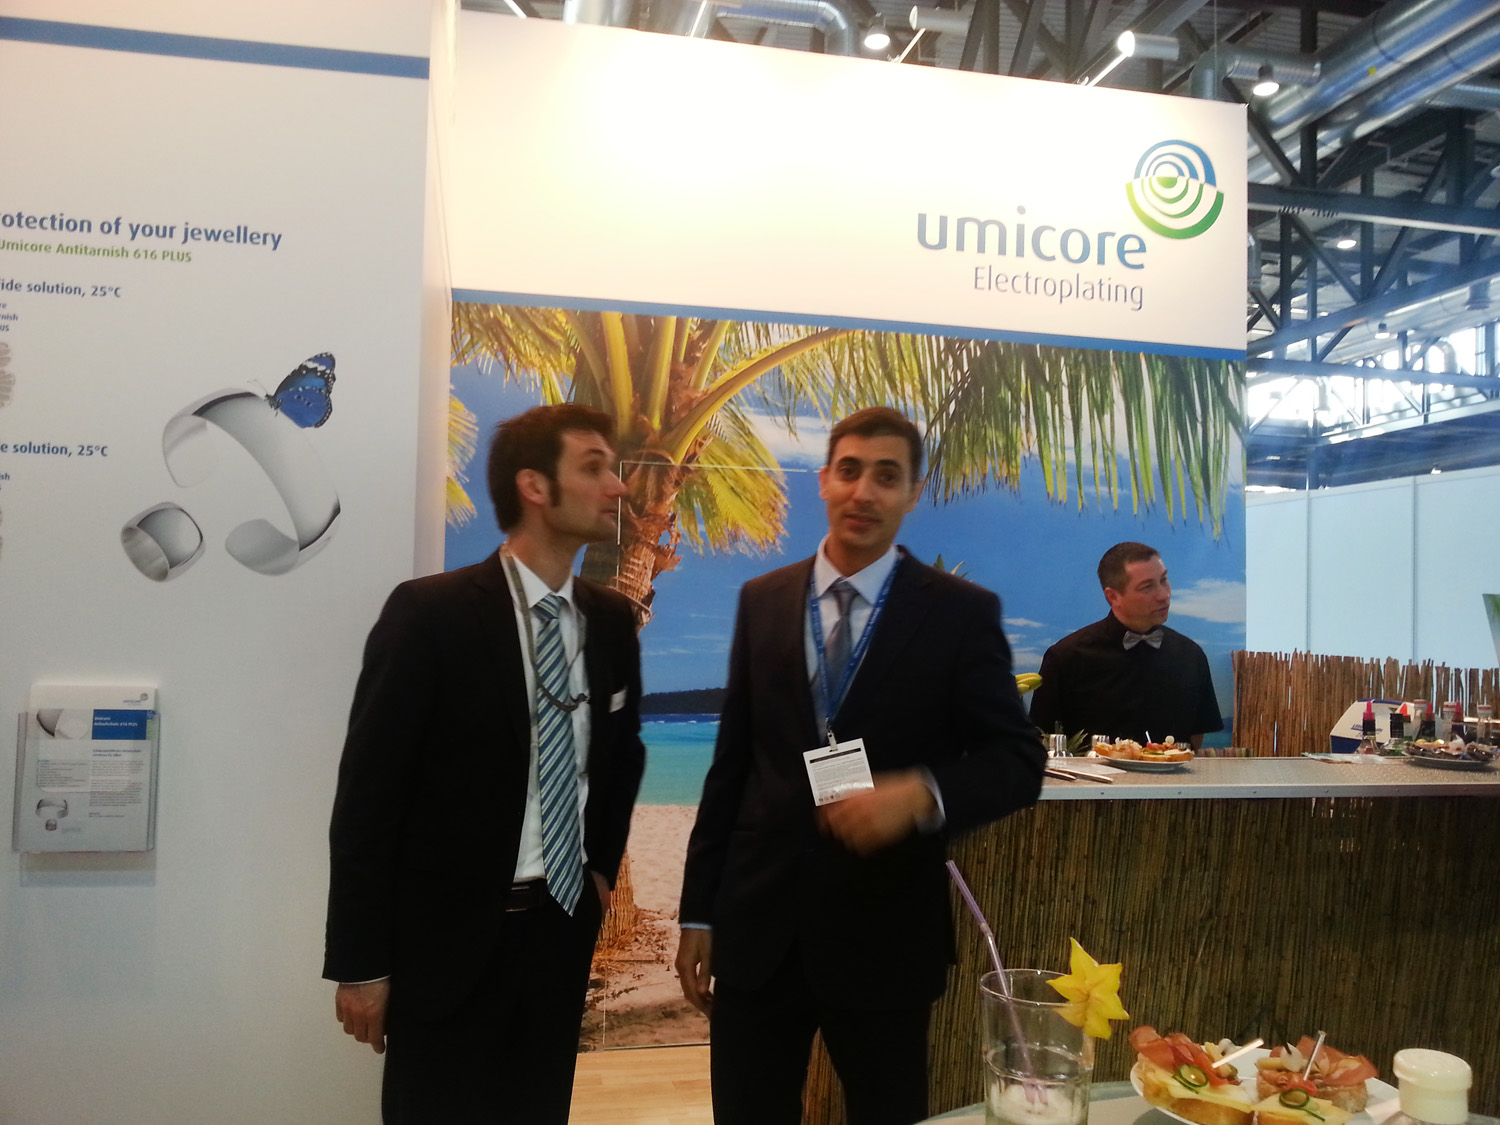 N-Jewellery-Techniques-Director-Mehernosh-Printer-at-Umicore-Stall-in-Freiburg-exhibition-Germany-March-2015